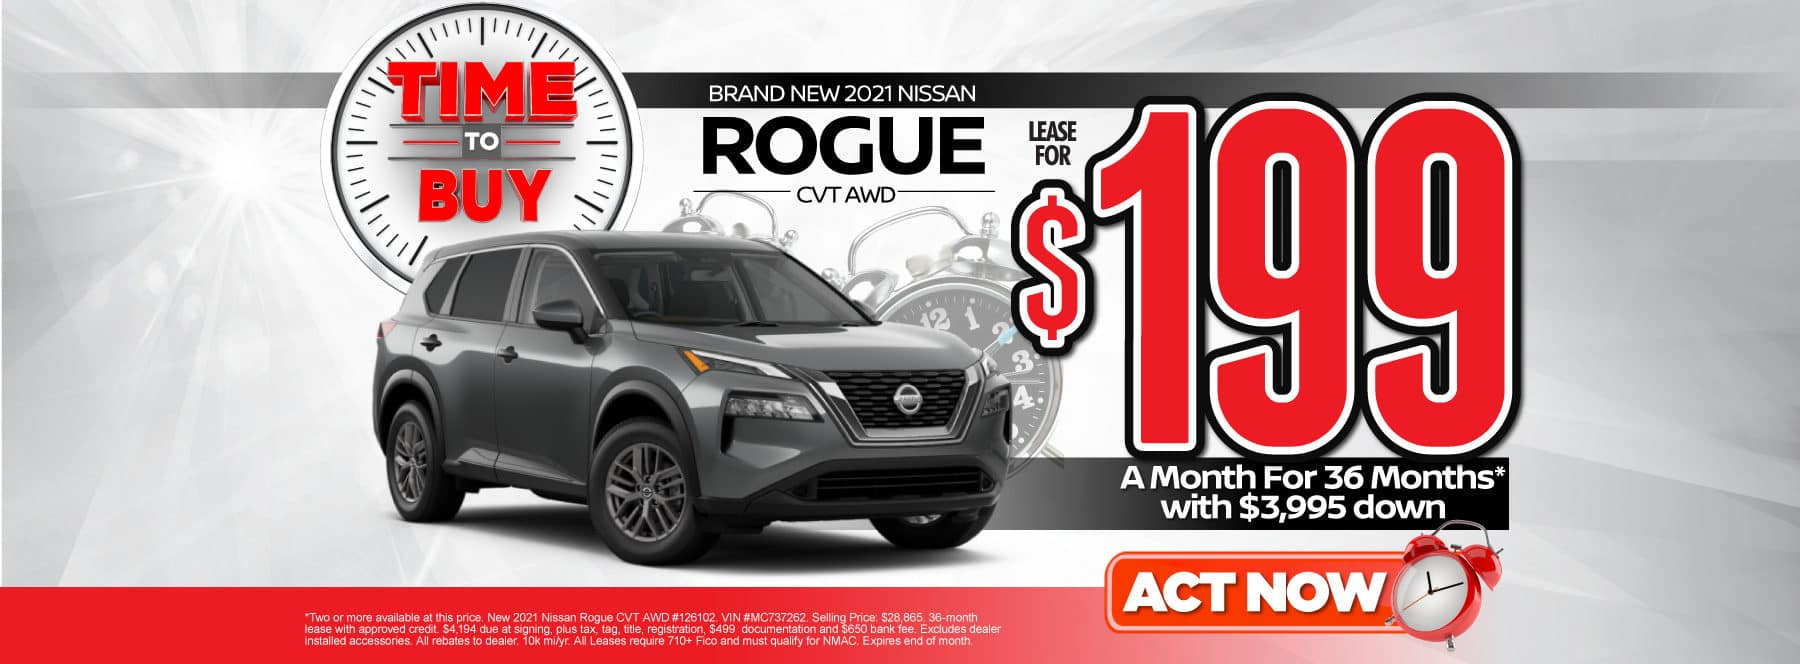 New 2021 Nissan Rogue | Lease for $199 a month | Act Now